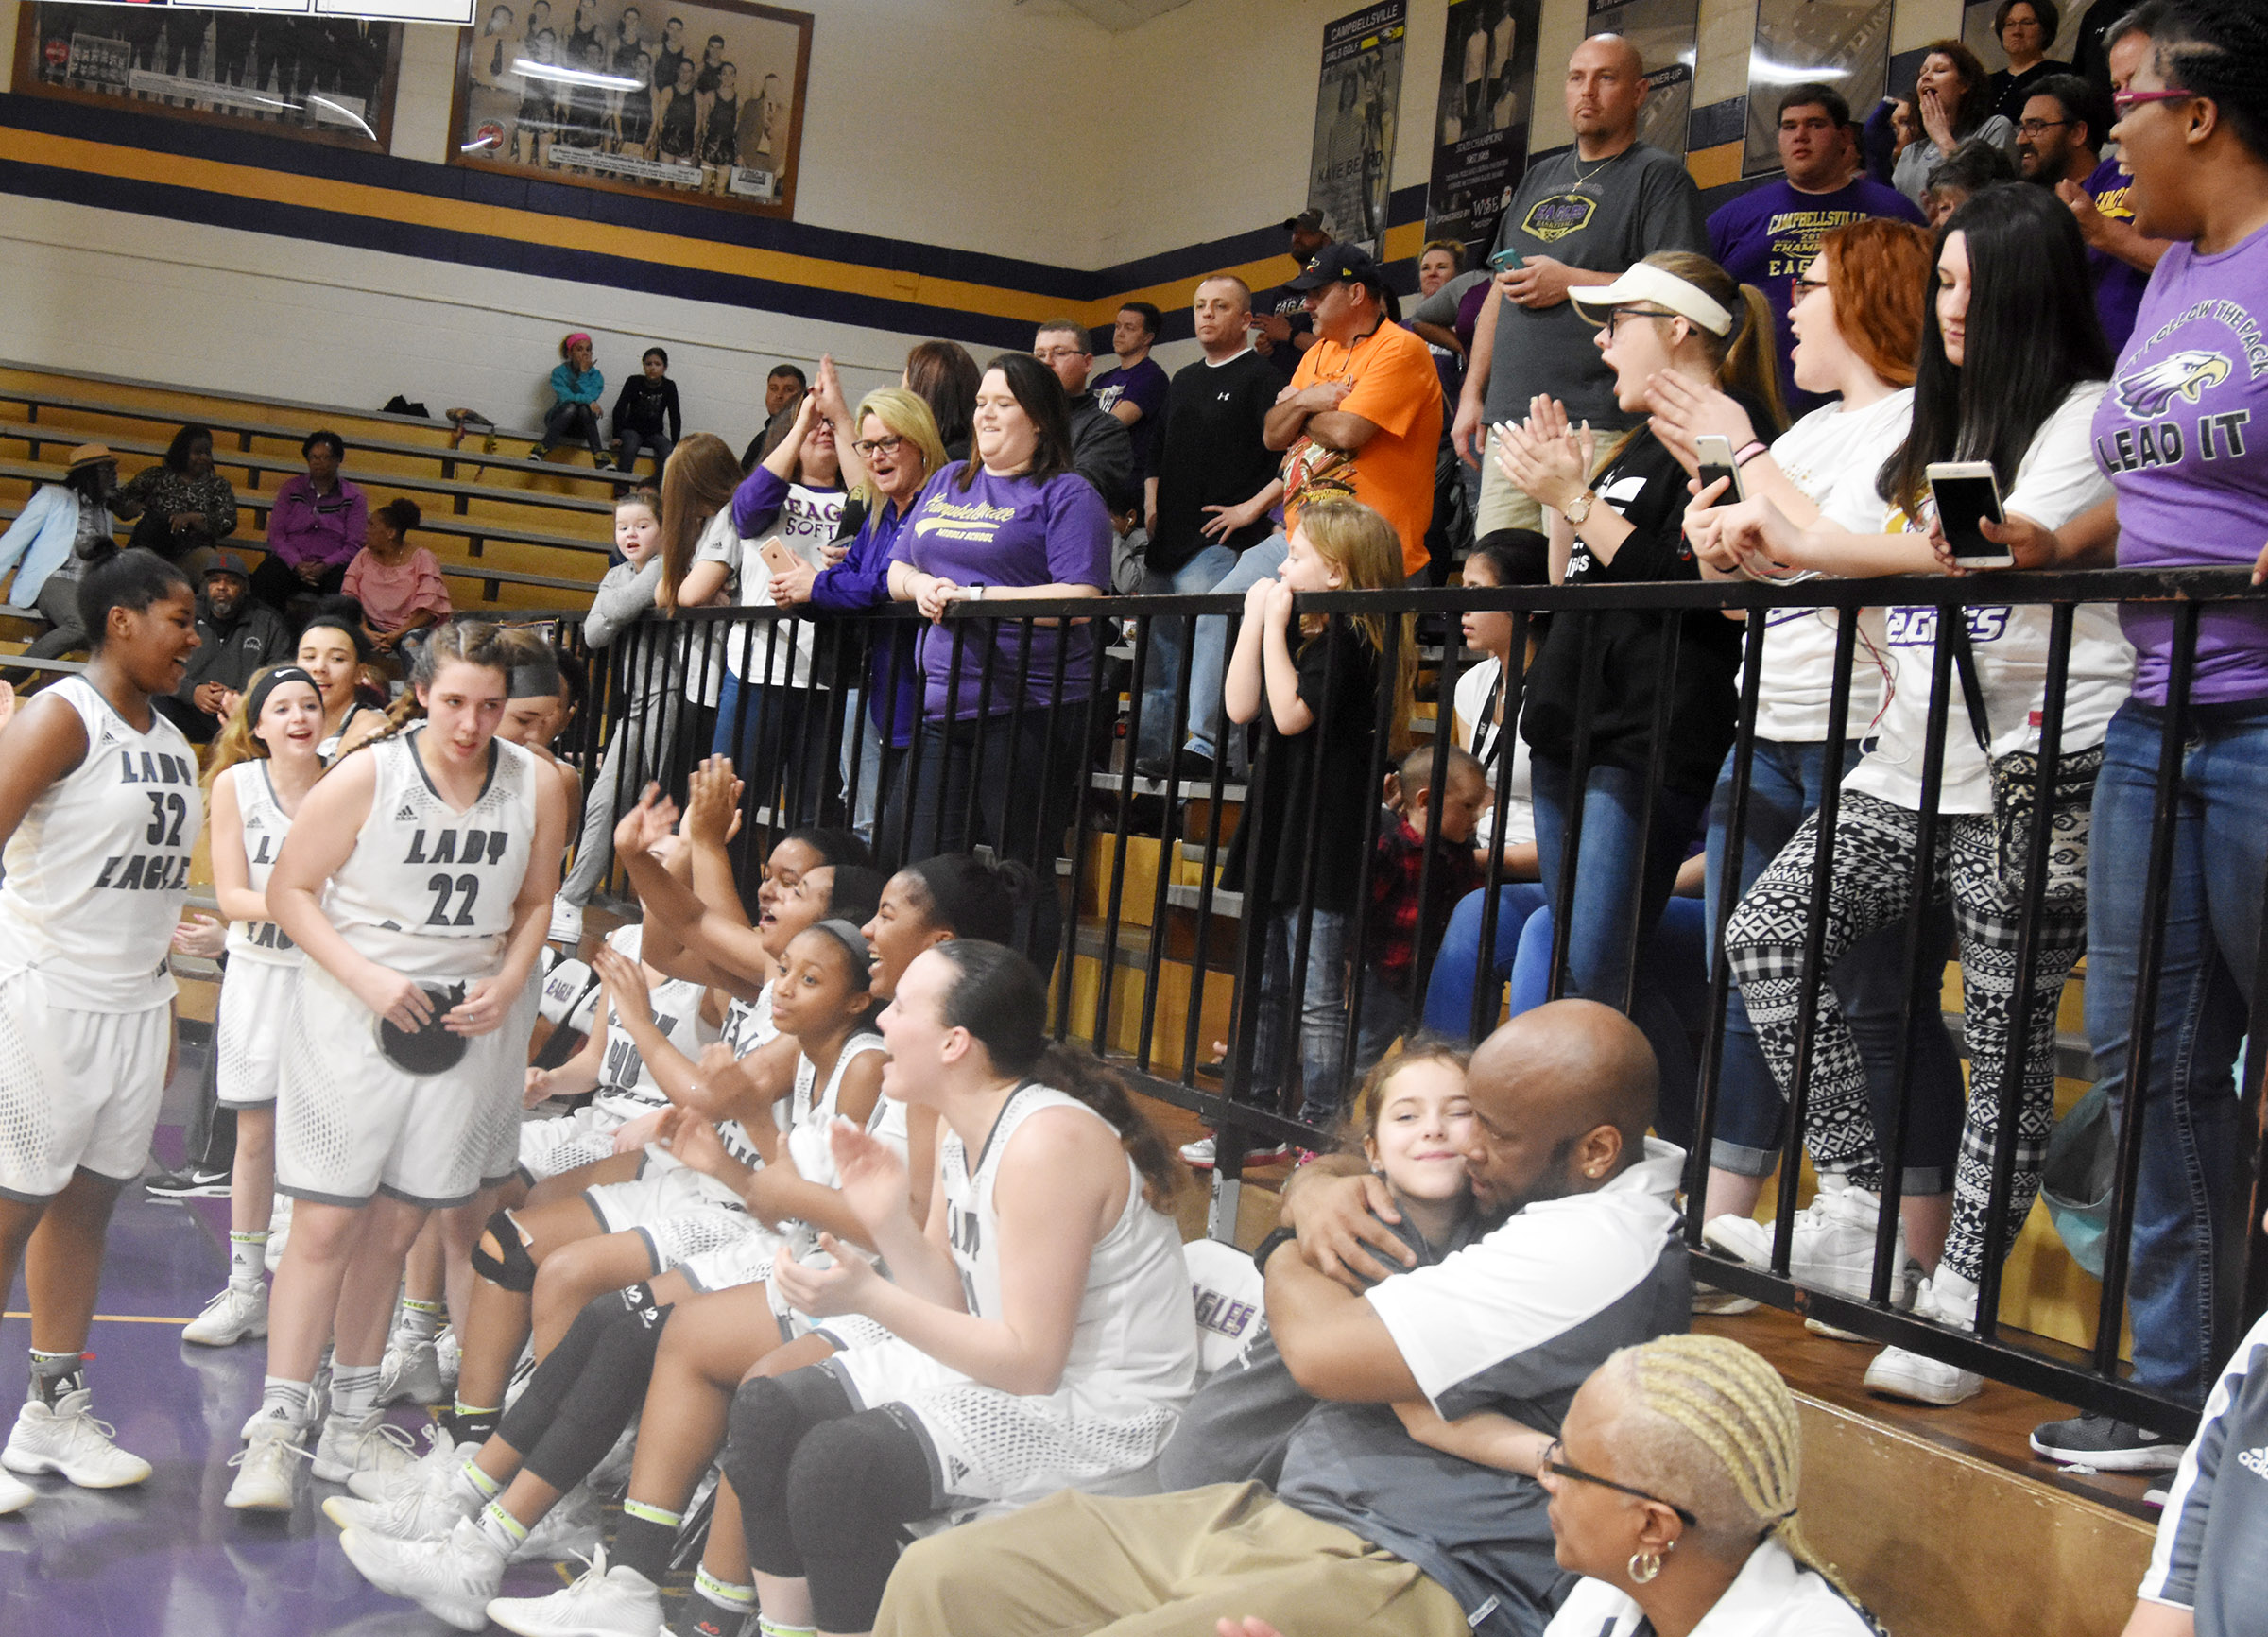 CHS girls' basketball players and fans celebrate.